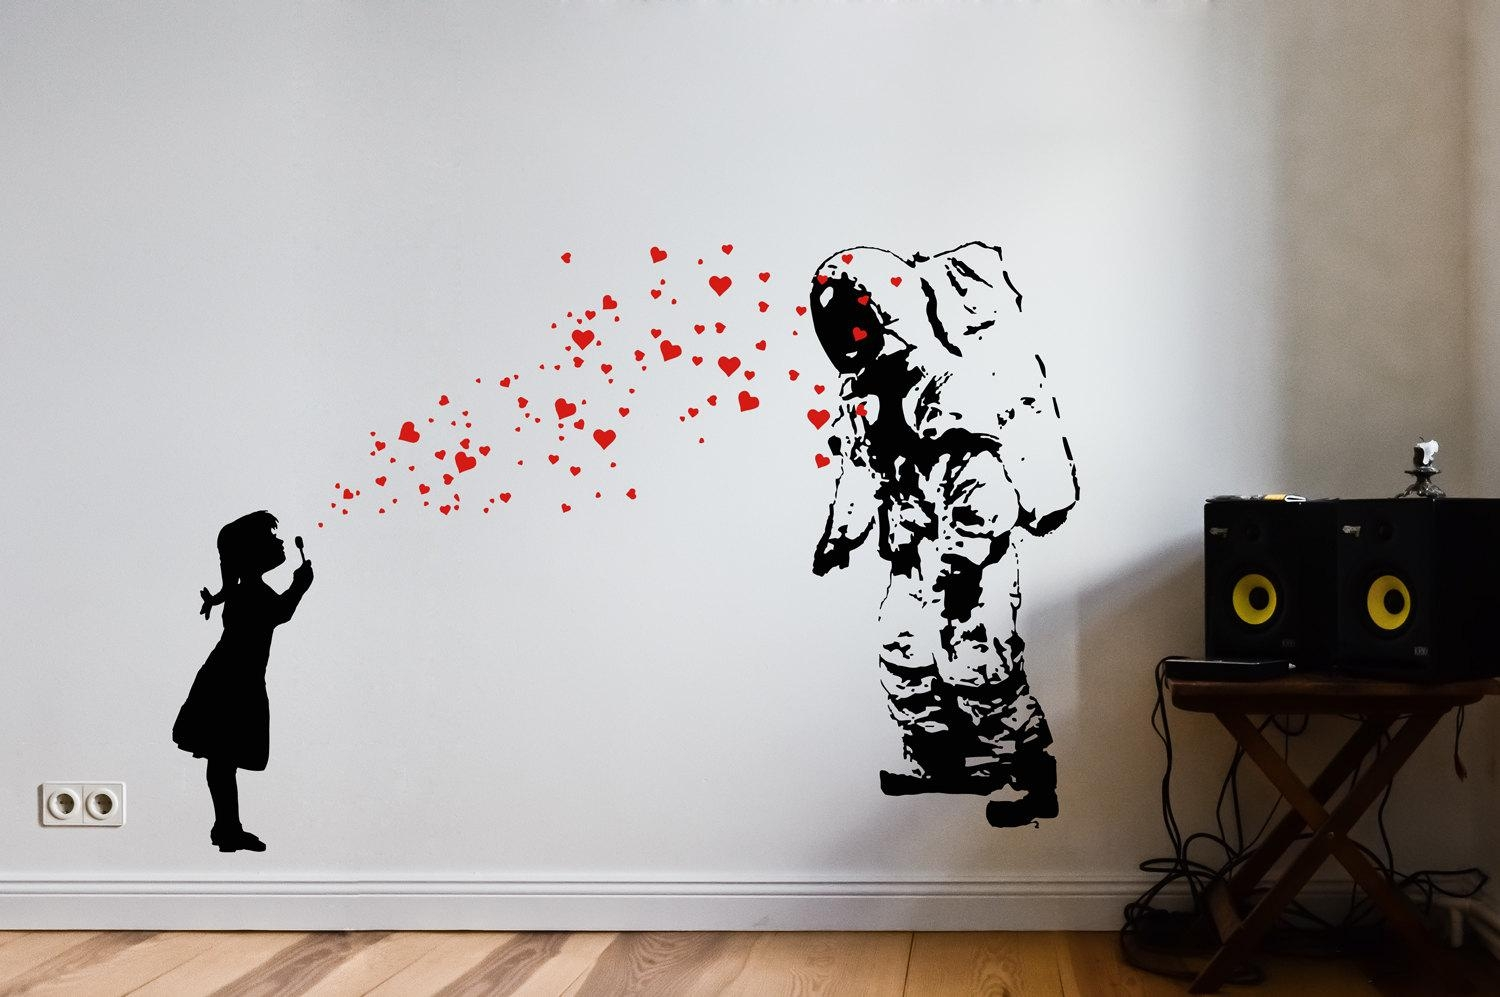 Astronaut Heart Bubble Love Wall Art Decal Street Art Banksy For Street Wall Art Decals (Image 4 of 20)